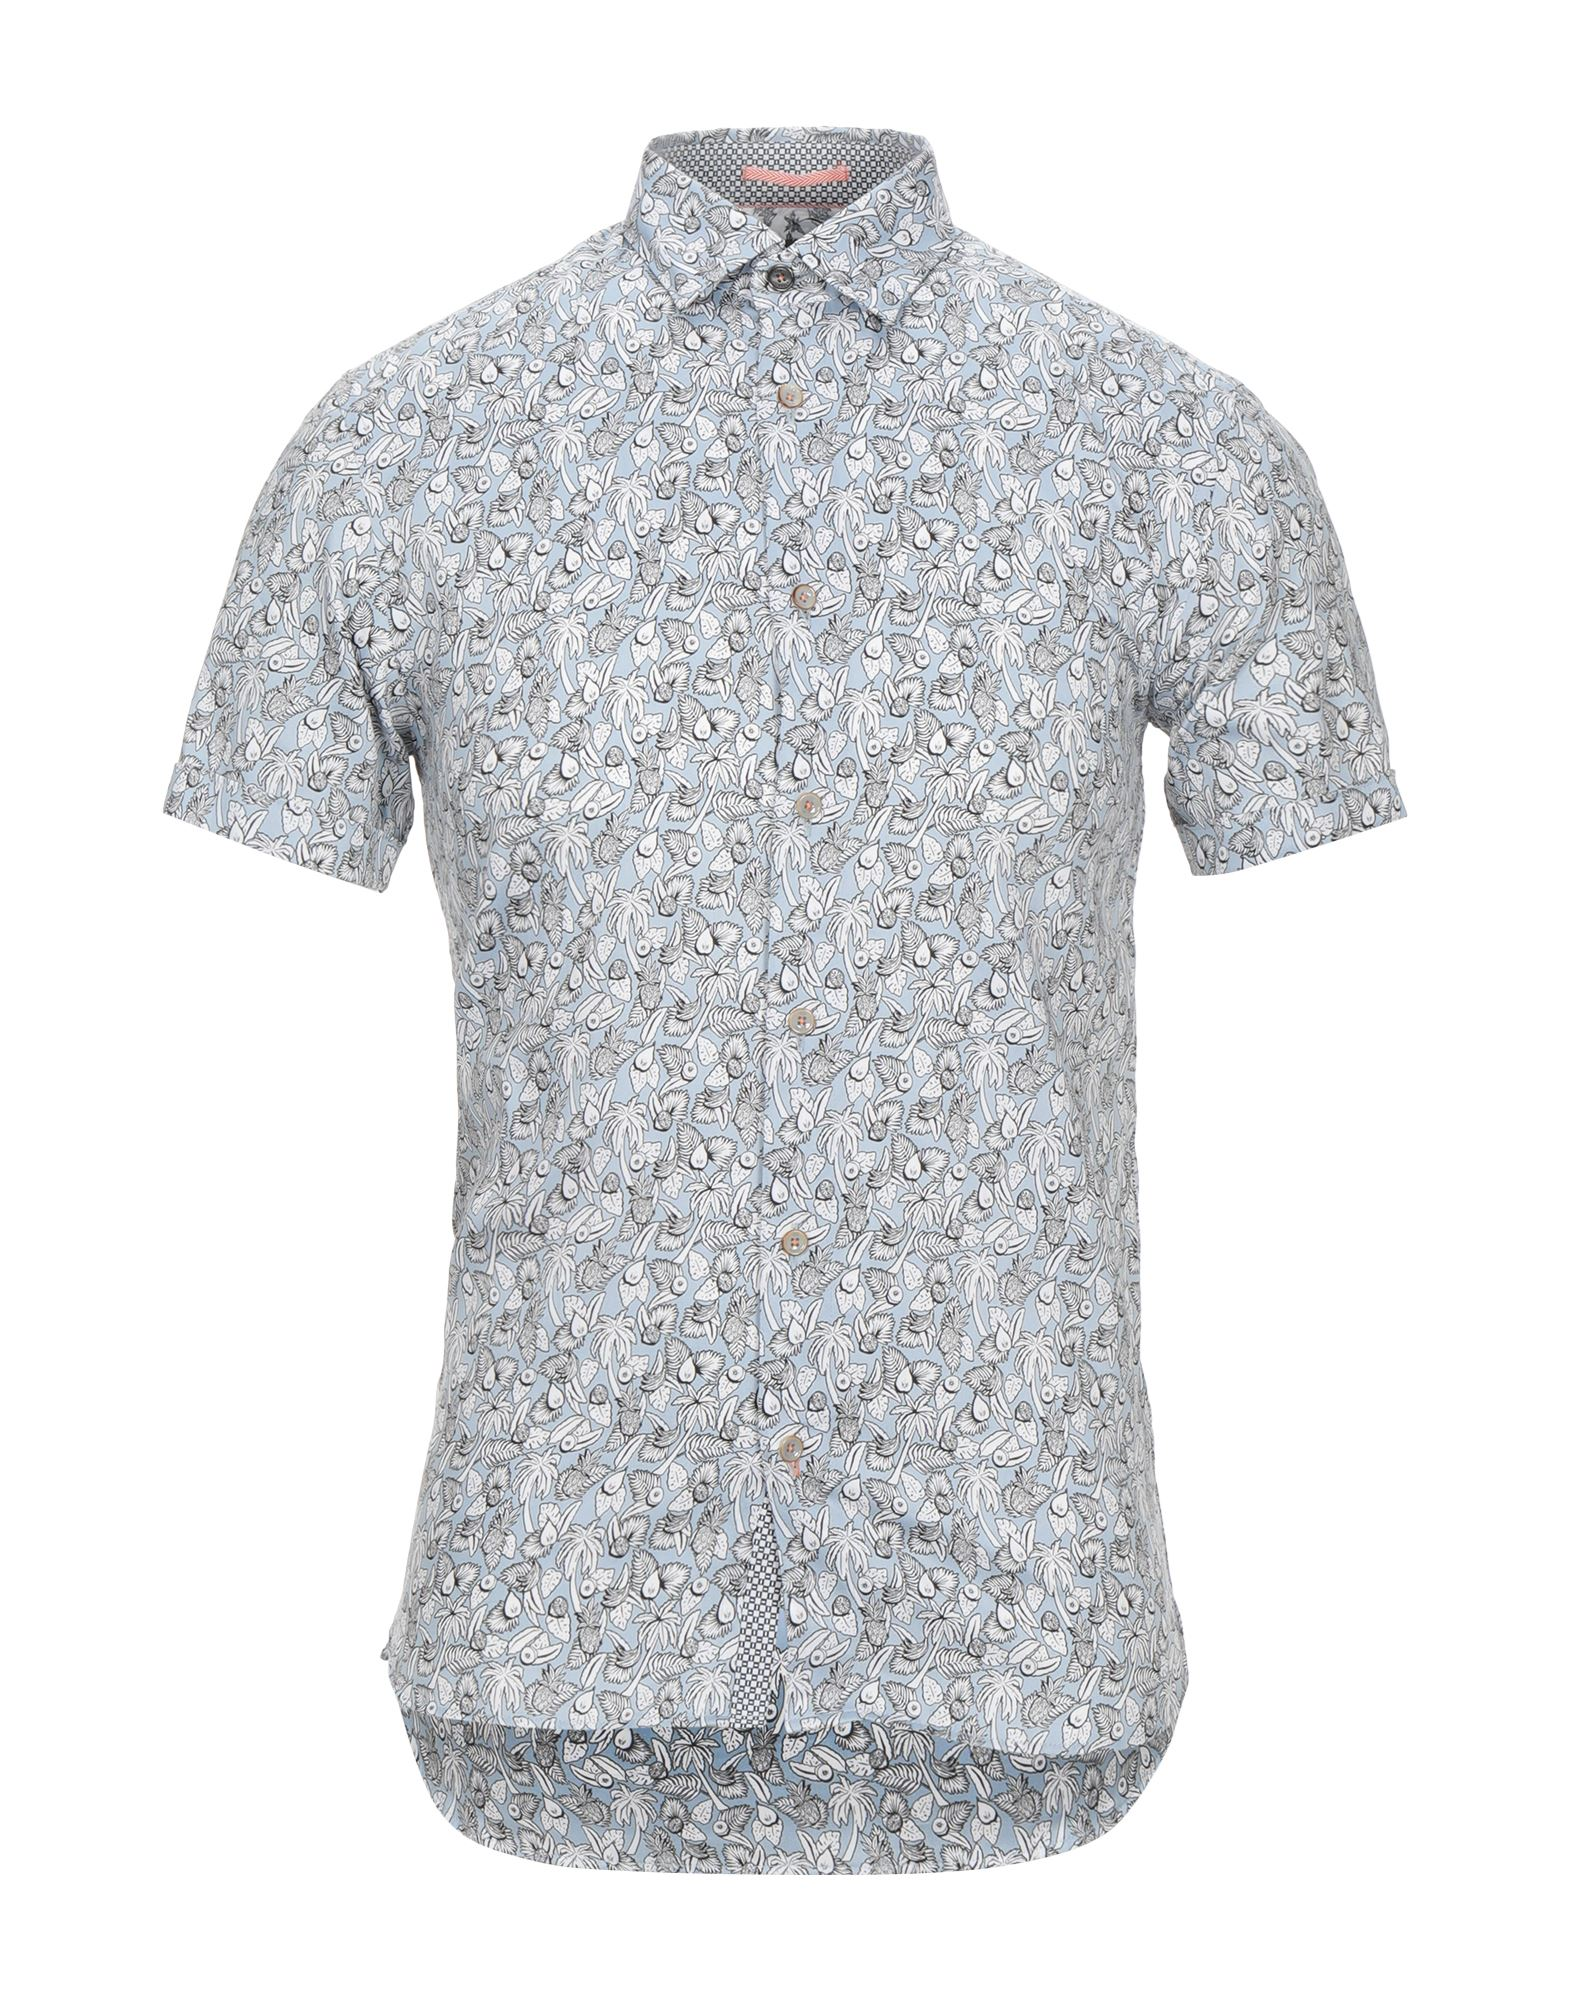 TED BAKER Shirts - Item 38961542